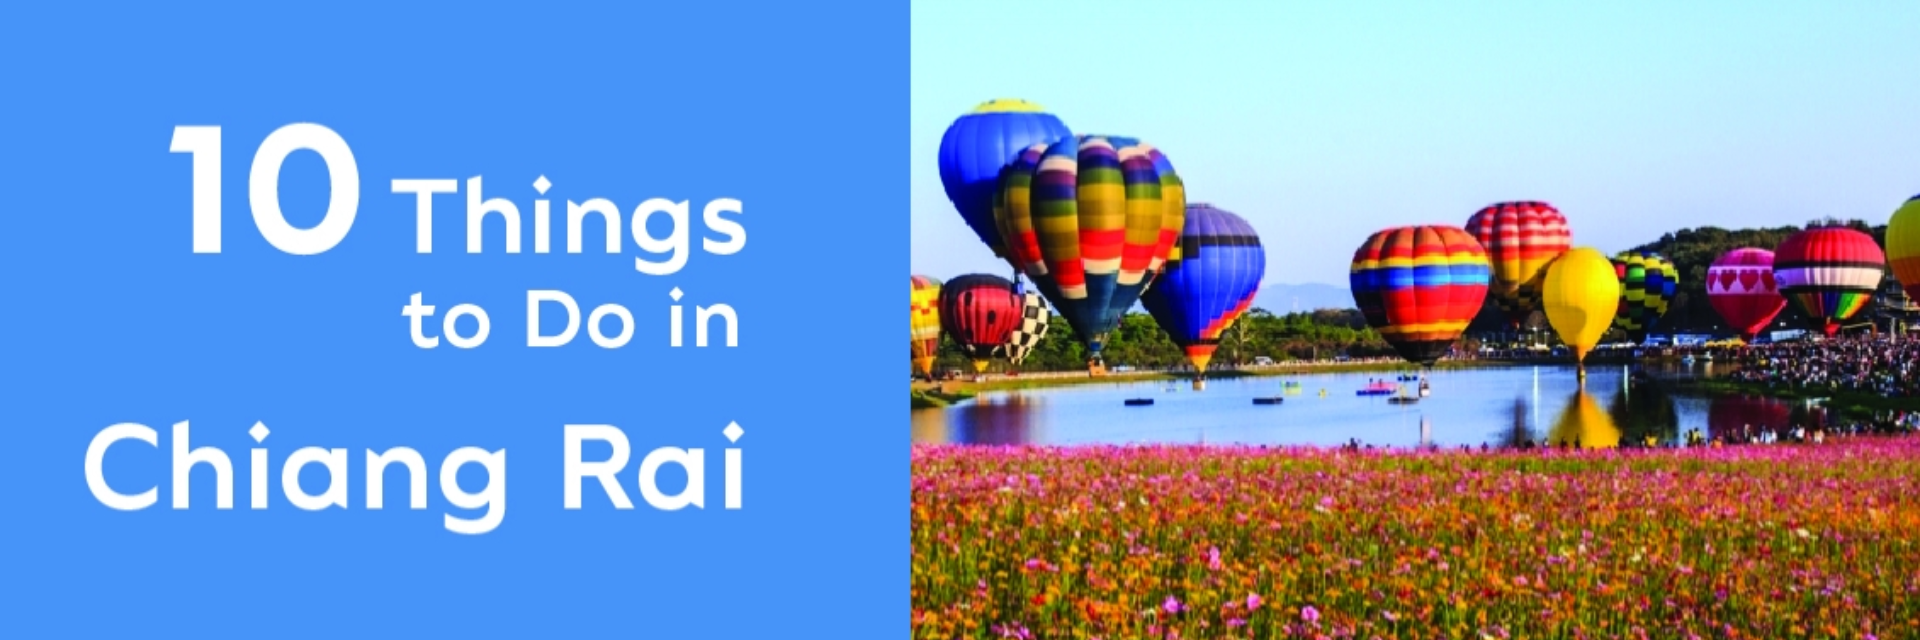 10 THINGS TO DO IN CHIANG RAI